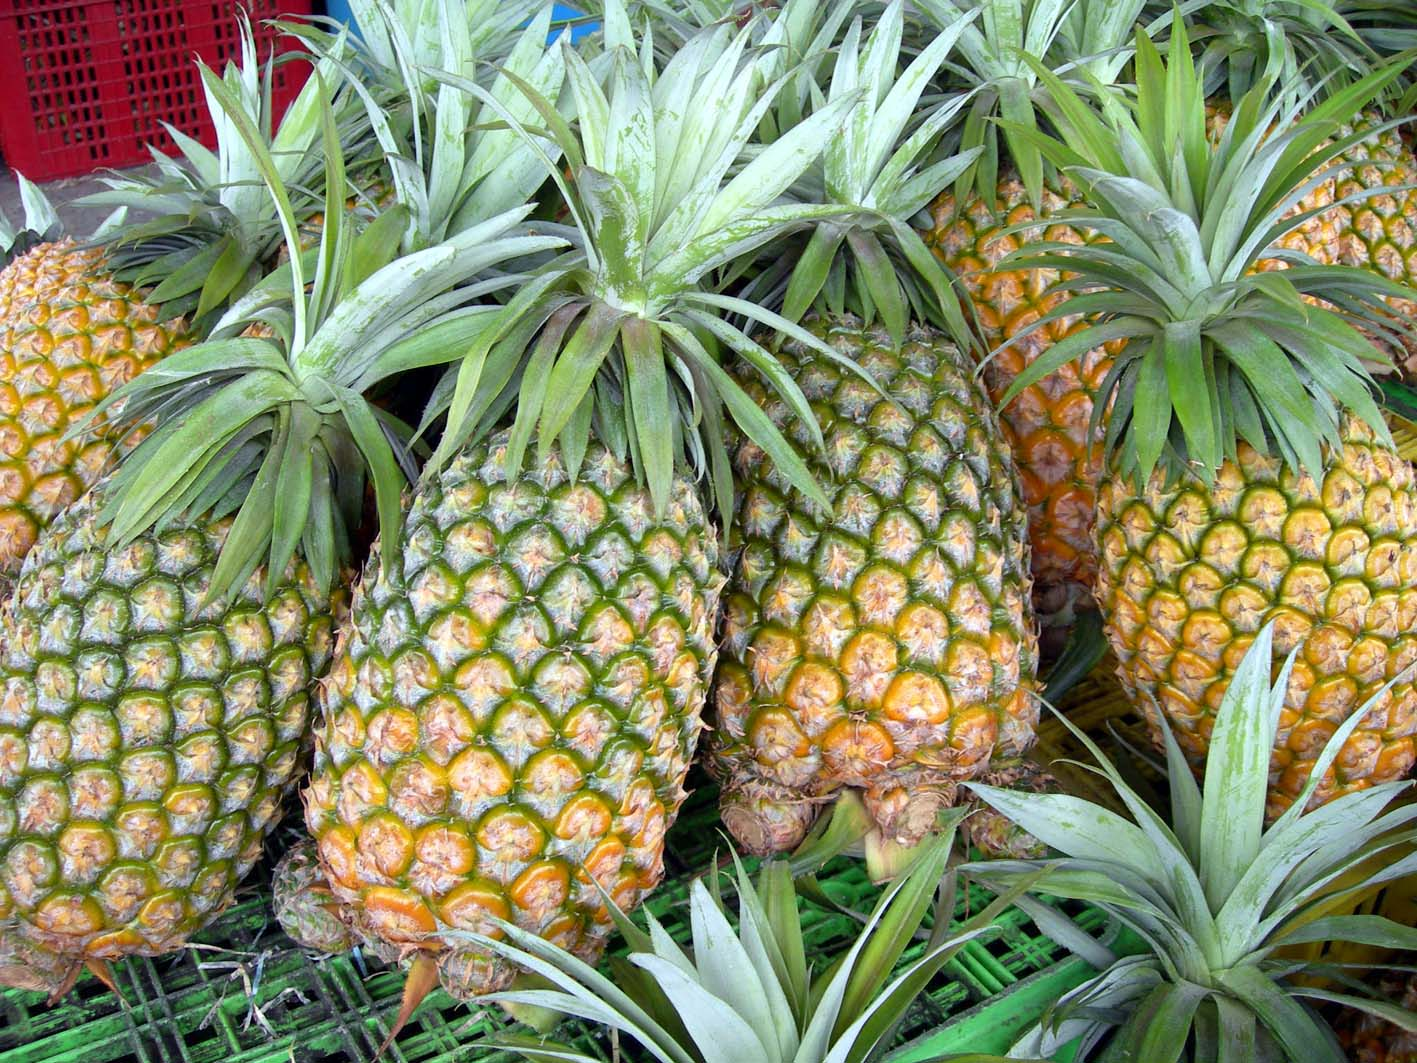 produce clerk the produce clerks handbook by rick chong how to handle pineapple